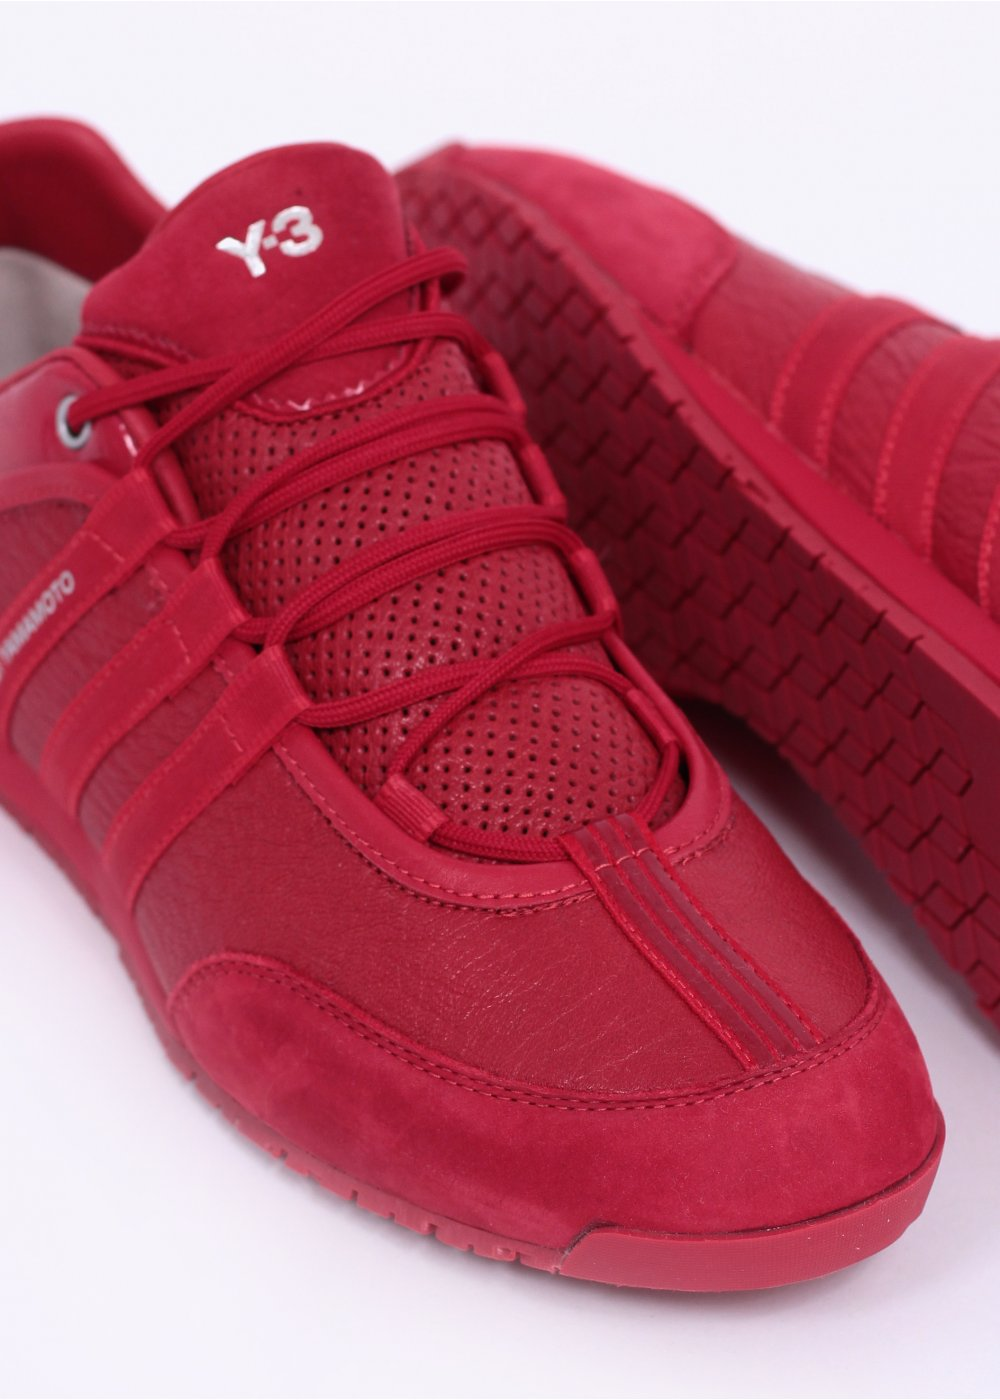 Adidas Y3 Boxing Trainers Red